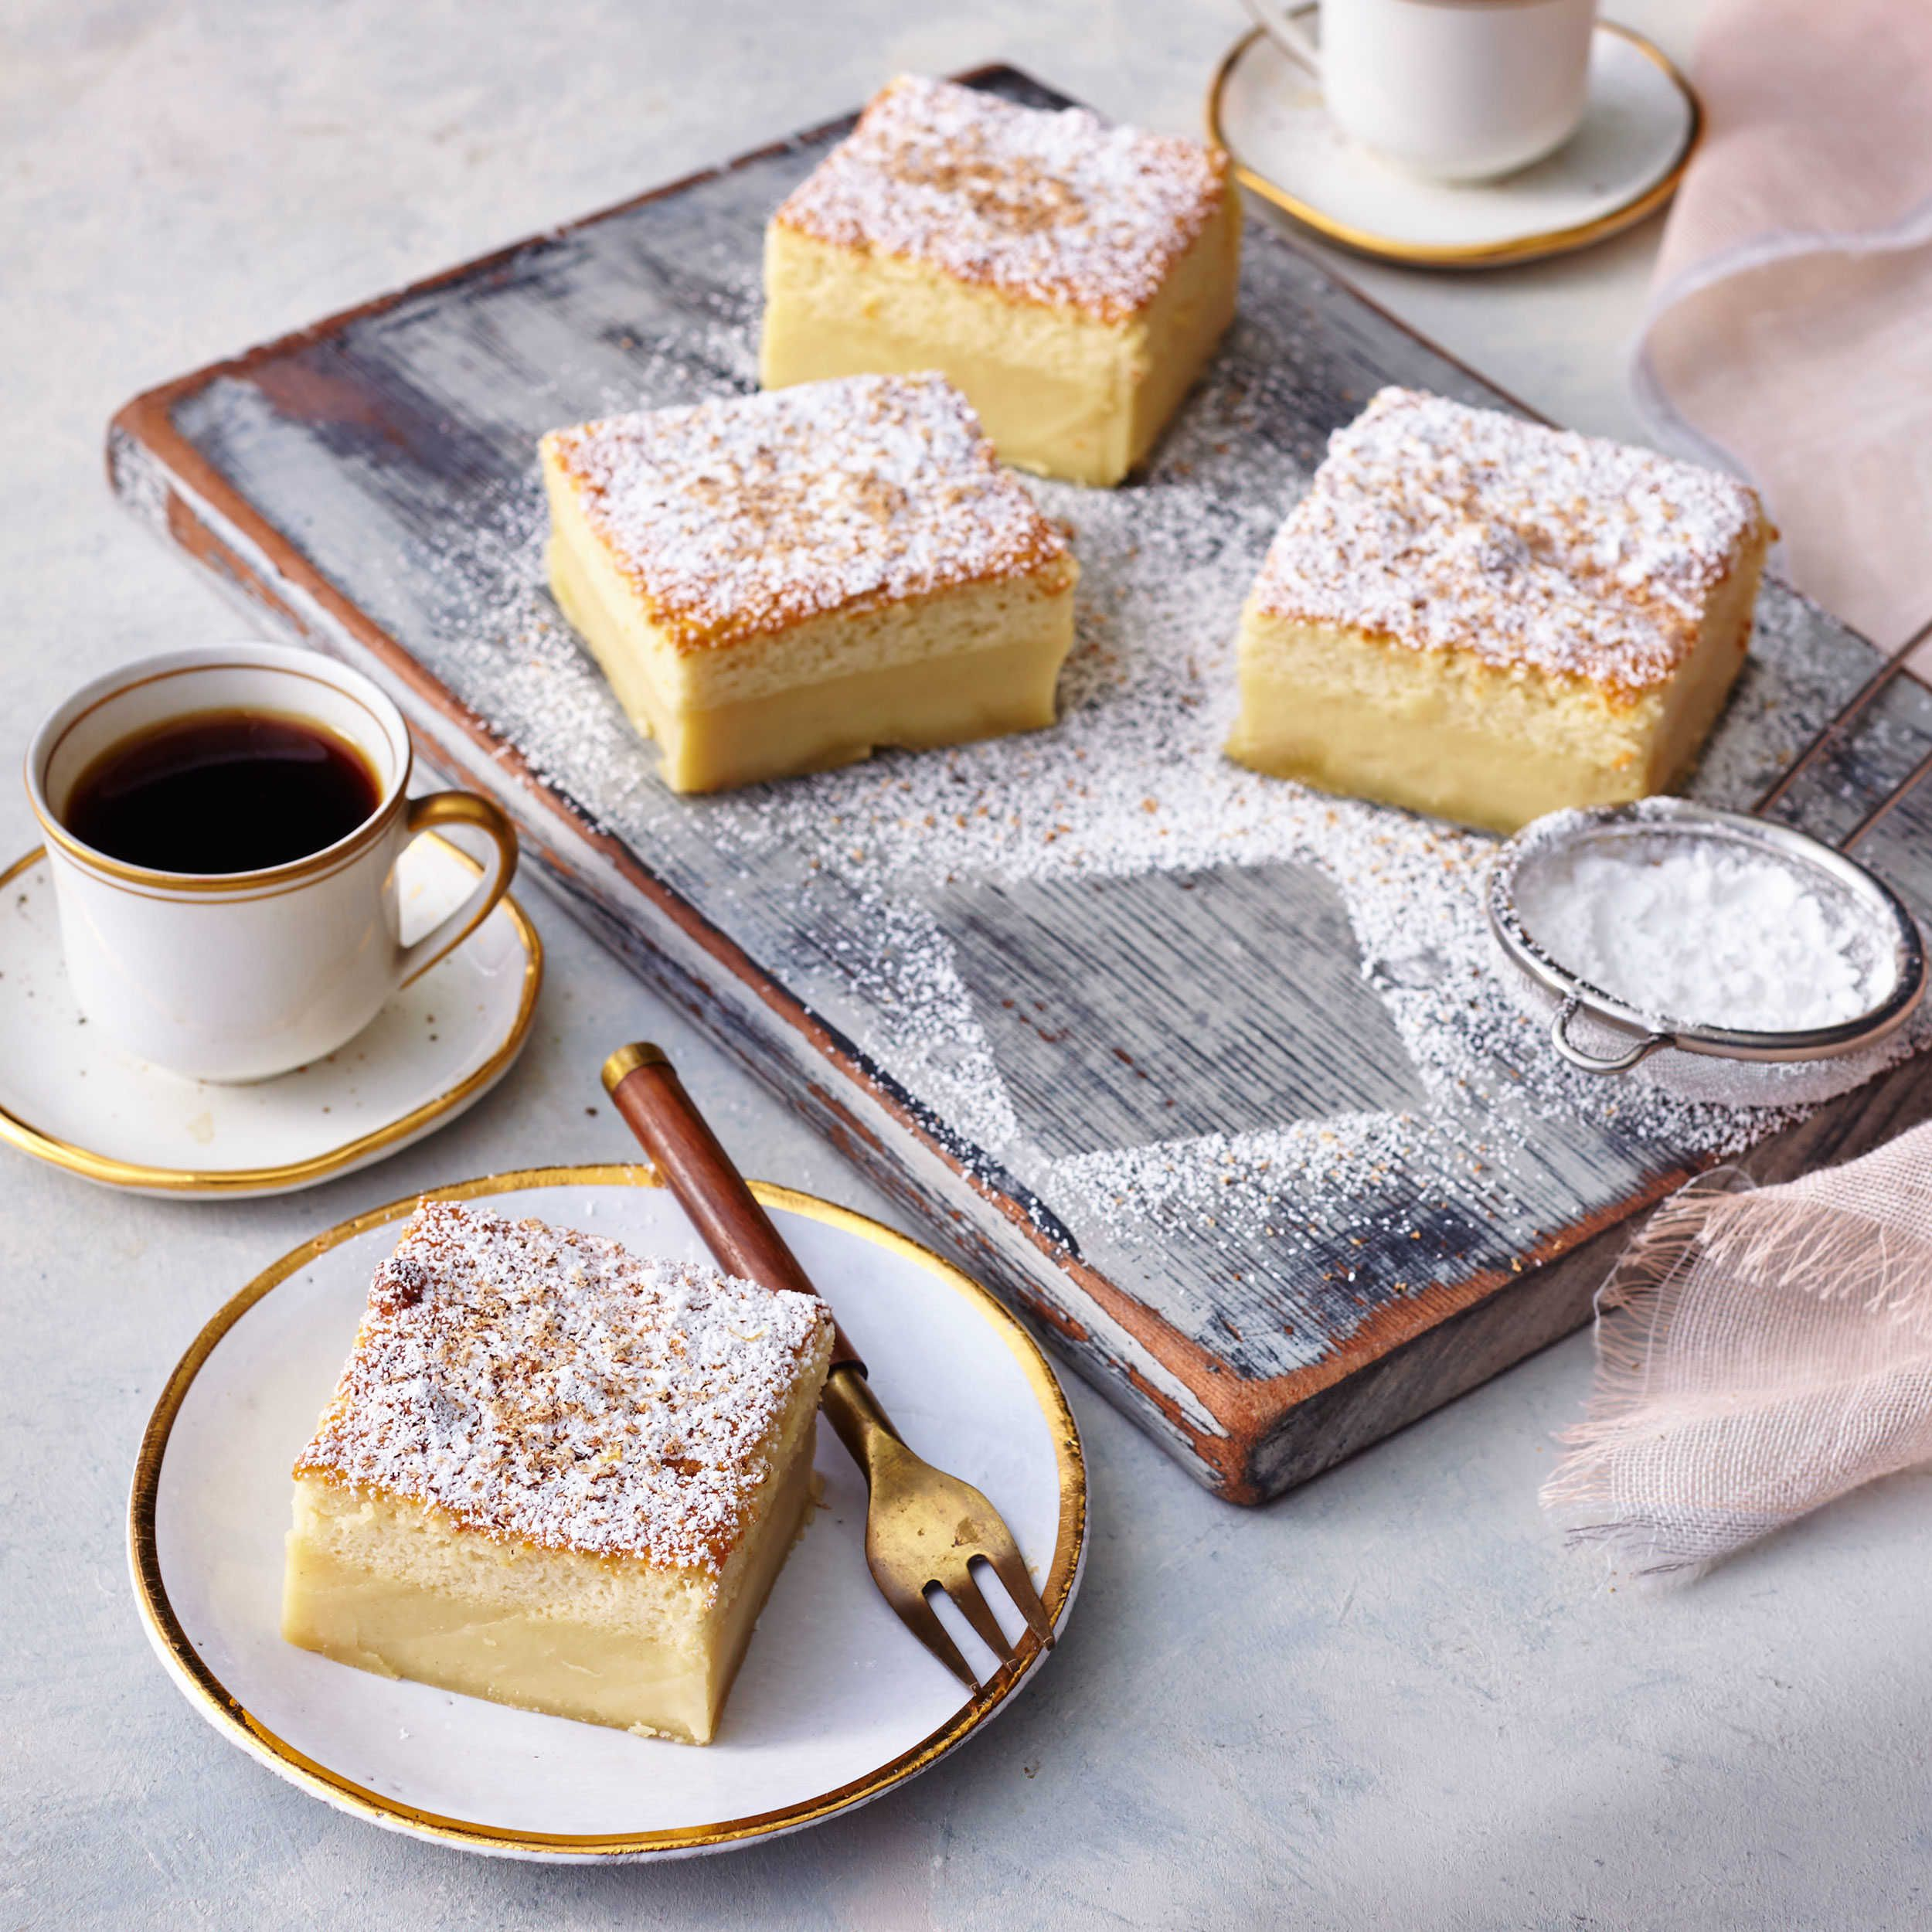 Creamy custard cake recipe